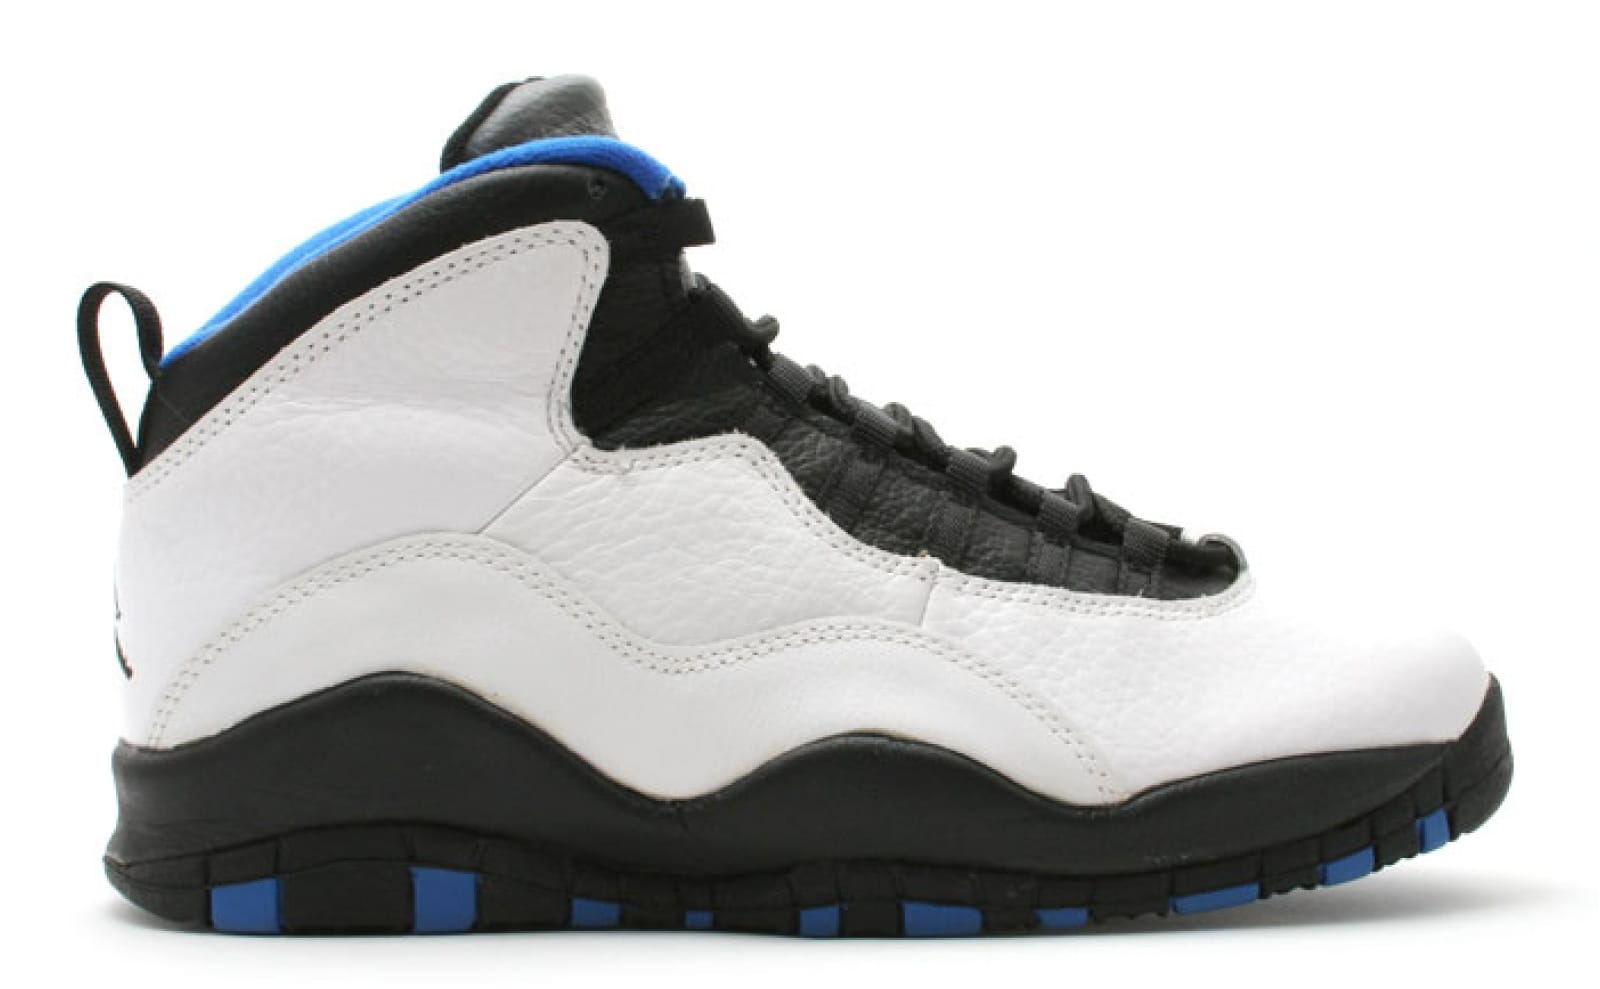 Air Jordan 10 'Orlando Magic' (1995)